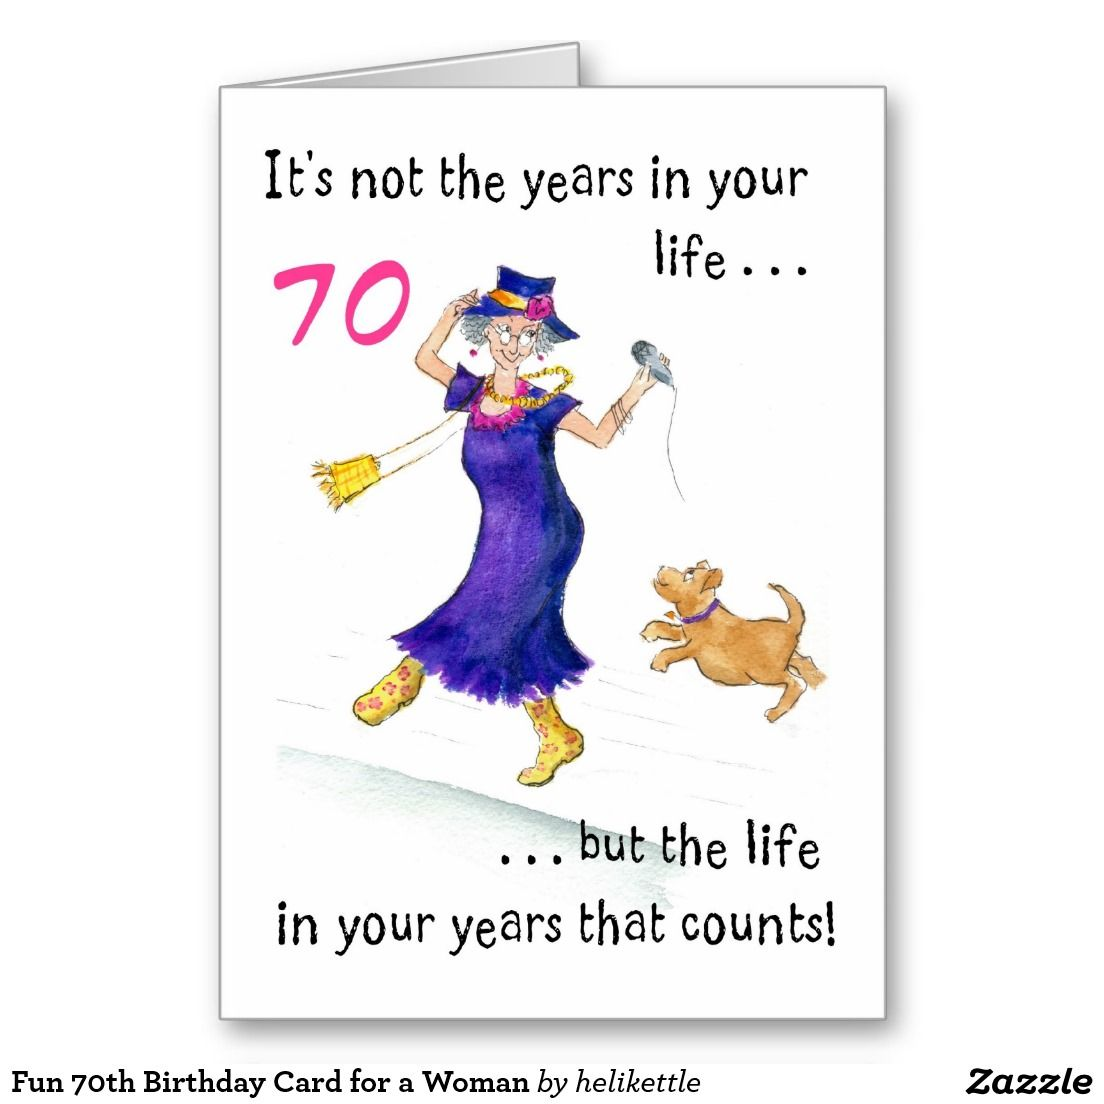 Fun 70th birthday card for a woman up to 350 httpzazzle fun 70th birthday card for a woman up to 350 bookmarktalkfo Choice Image